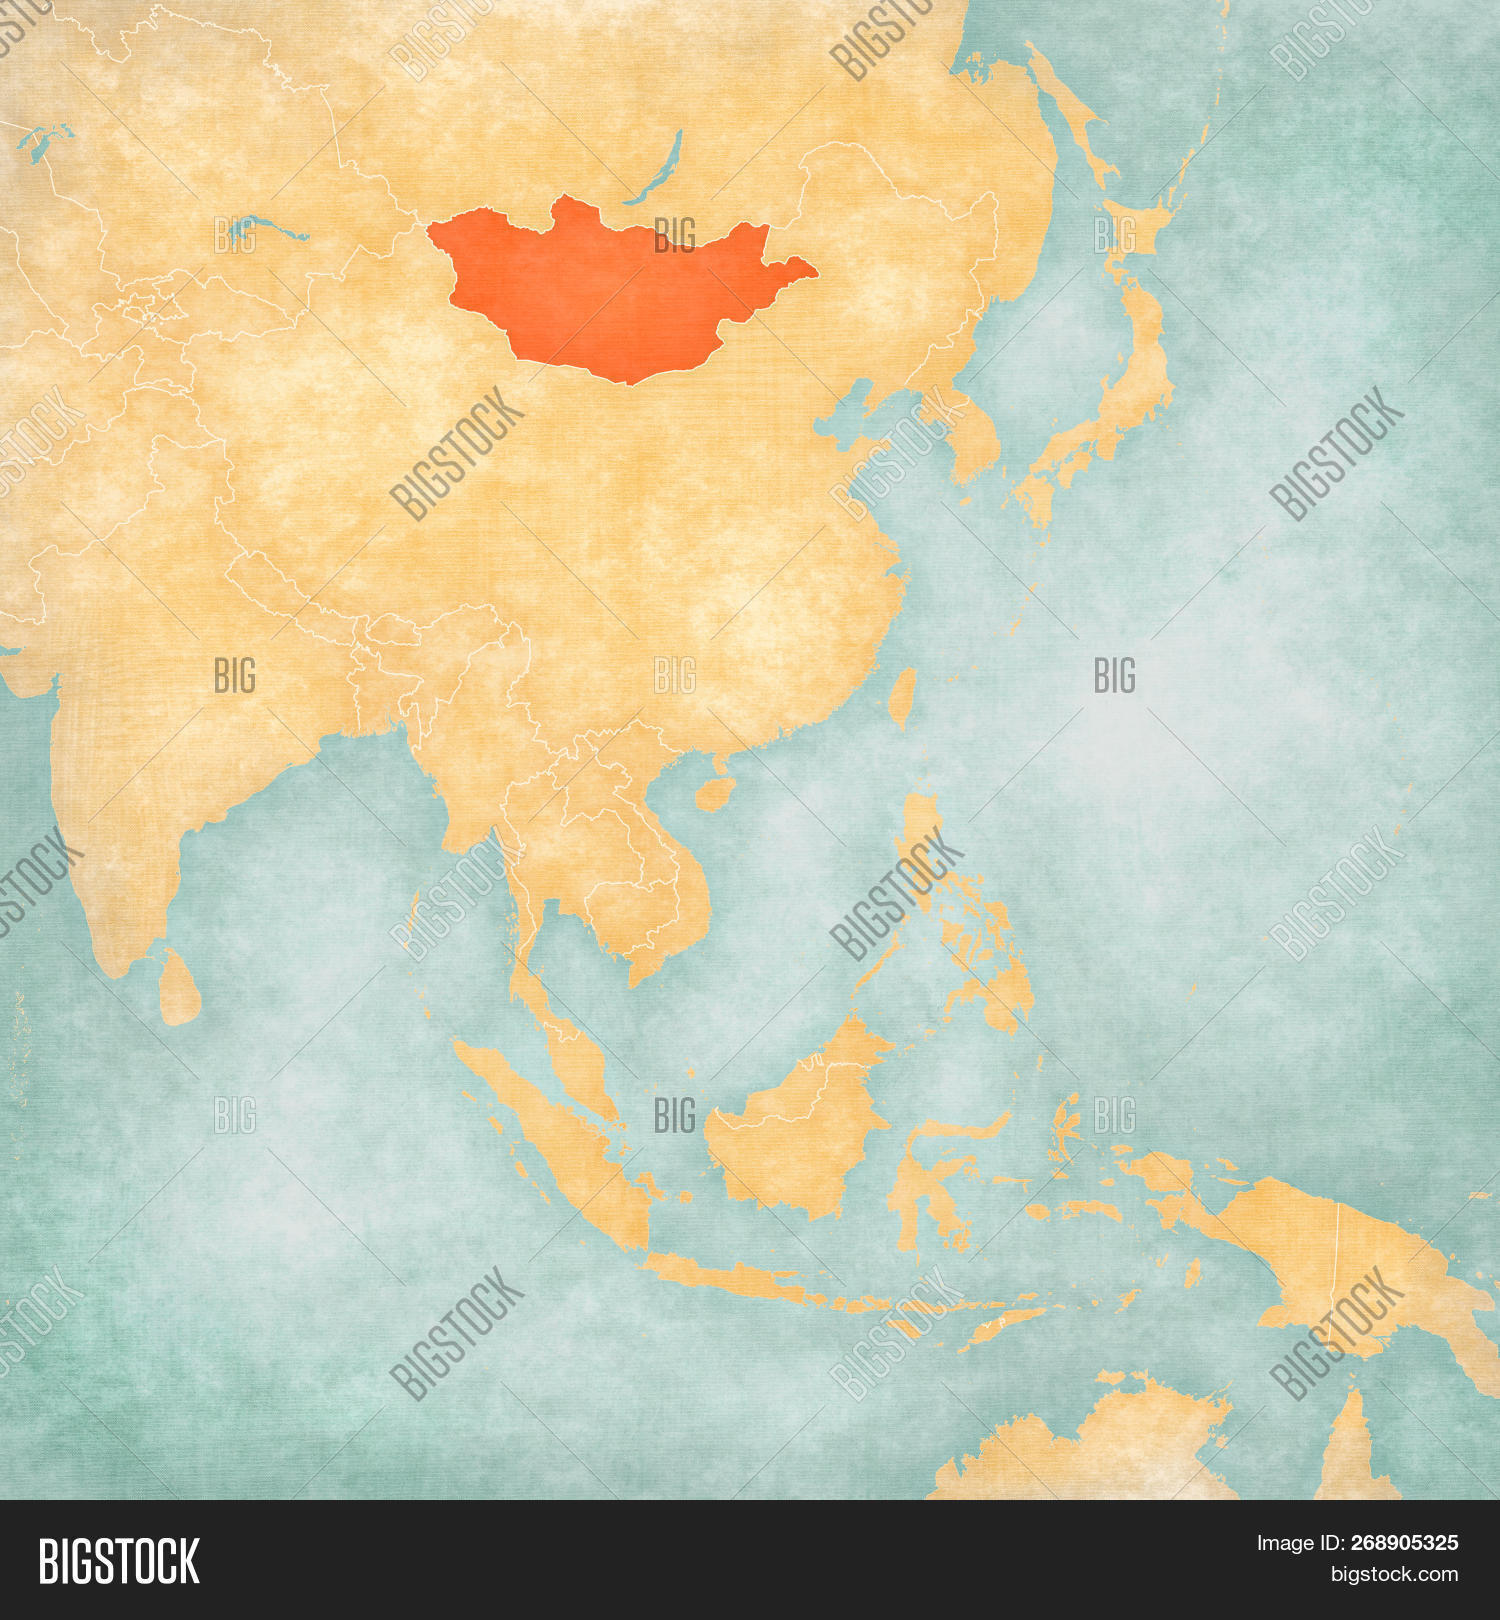 Map Of East And Southeast Asia.Mongolia On Map East Image Photo Free Trial Bigstock